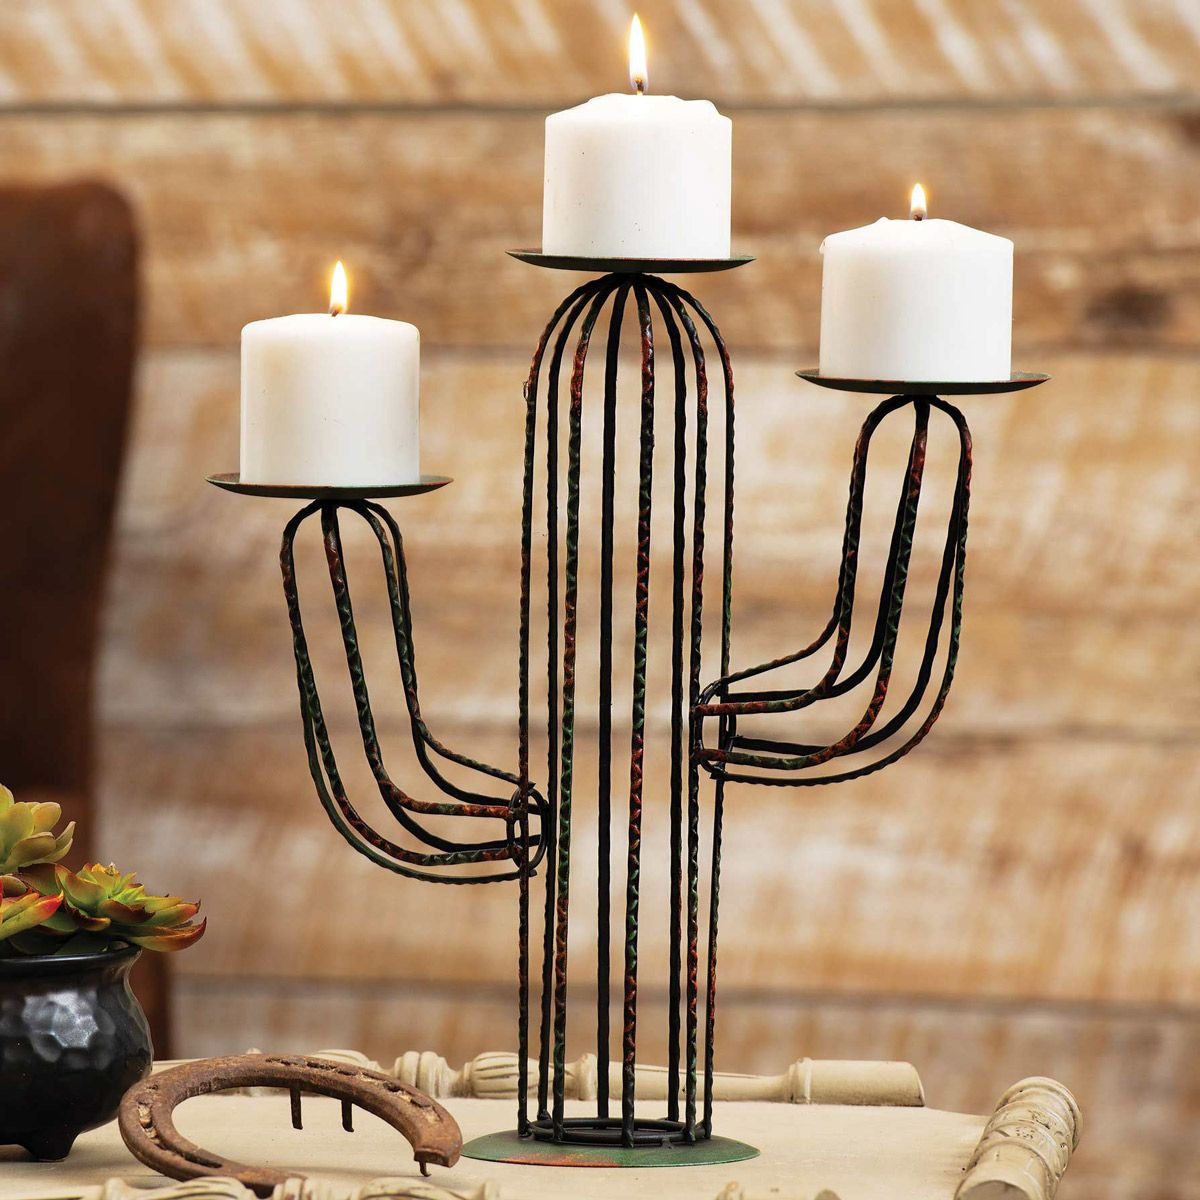 Saguaro Cactus Wire Candle Holder - CLEARANCE